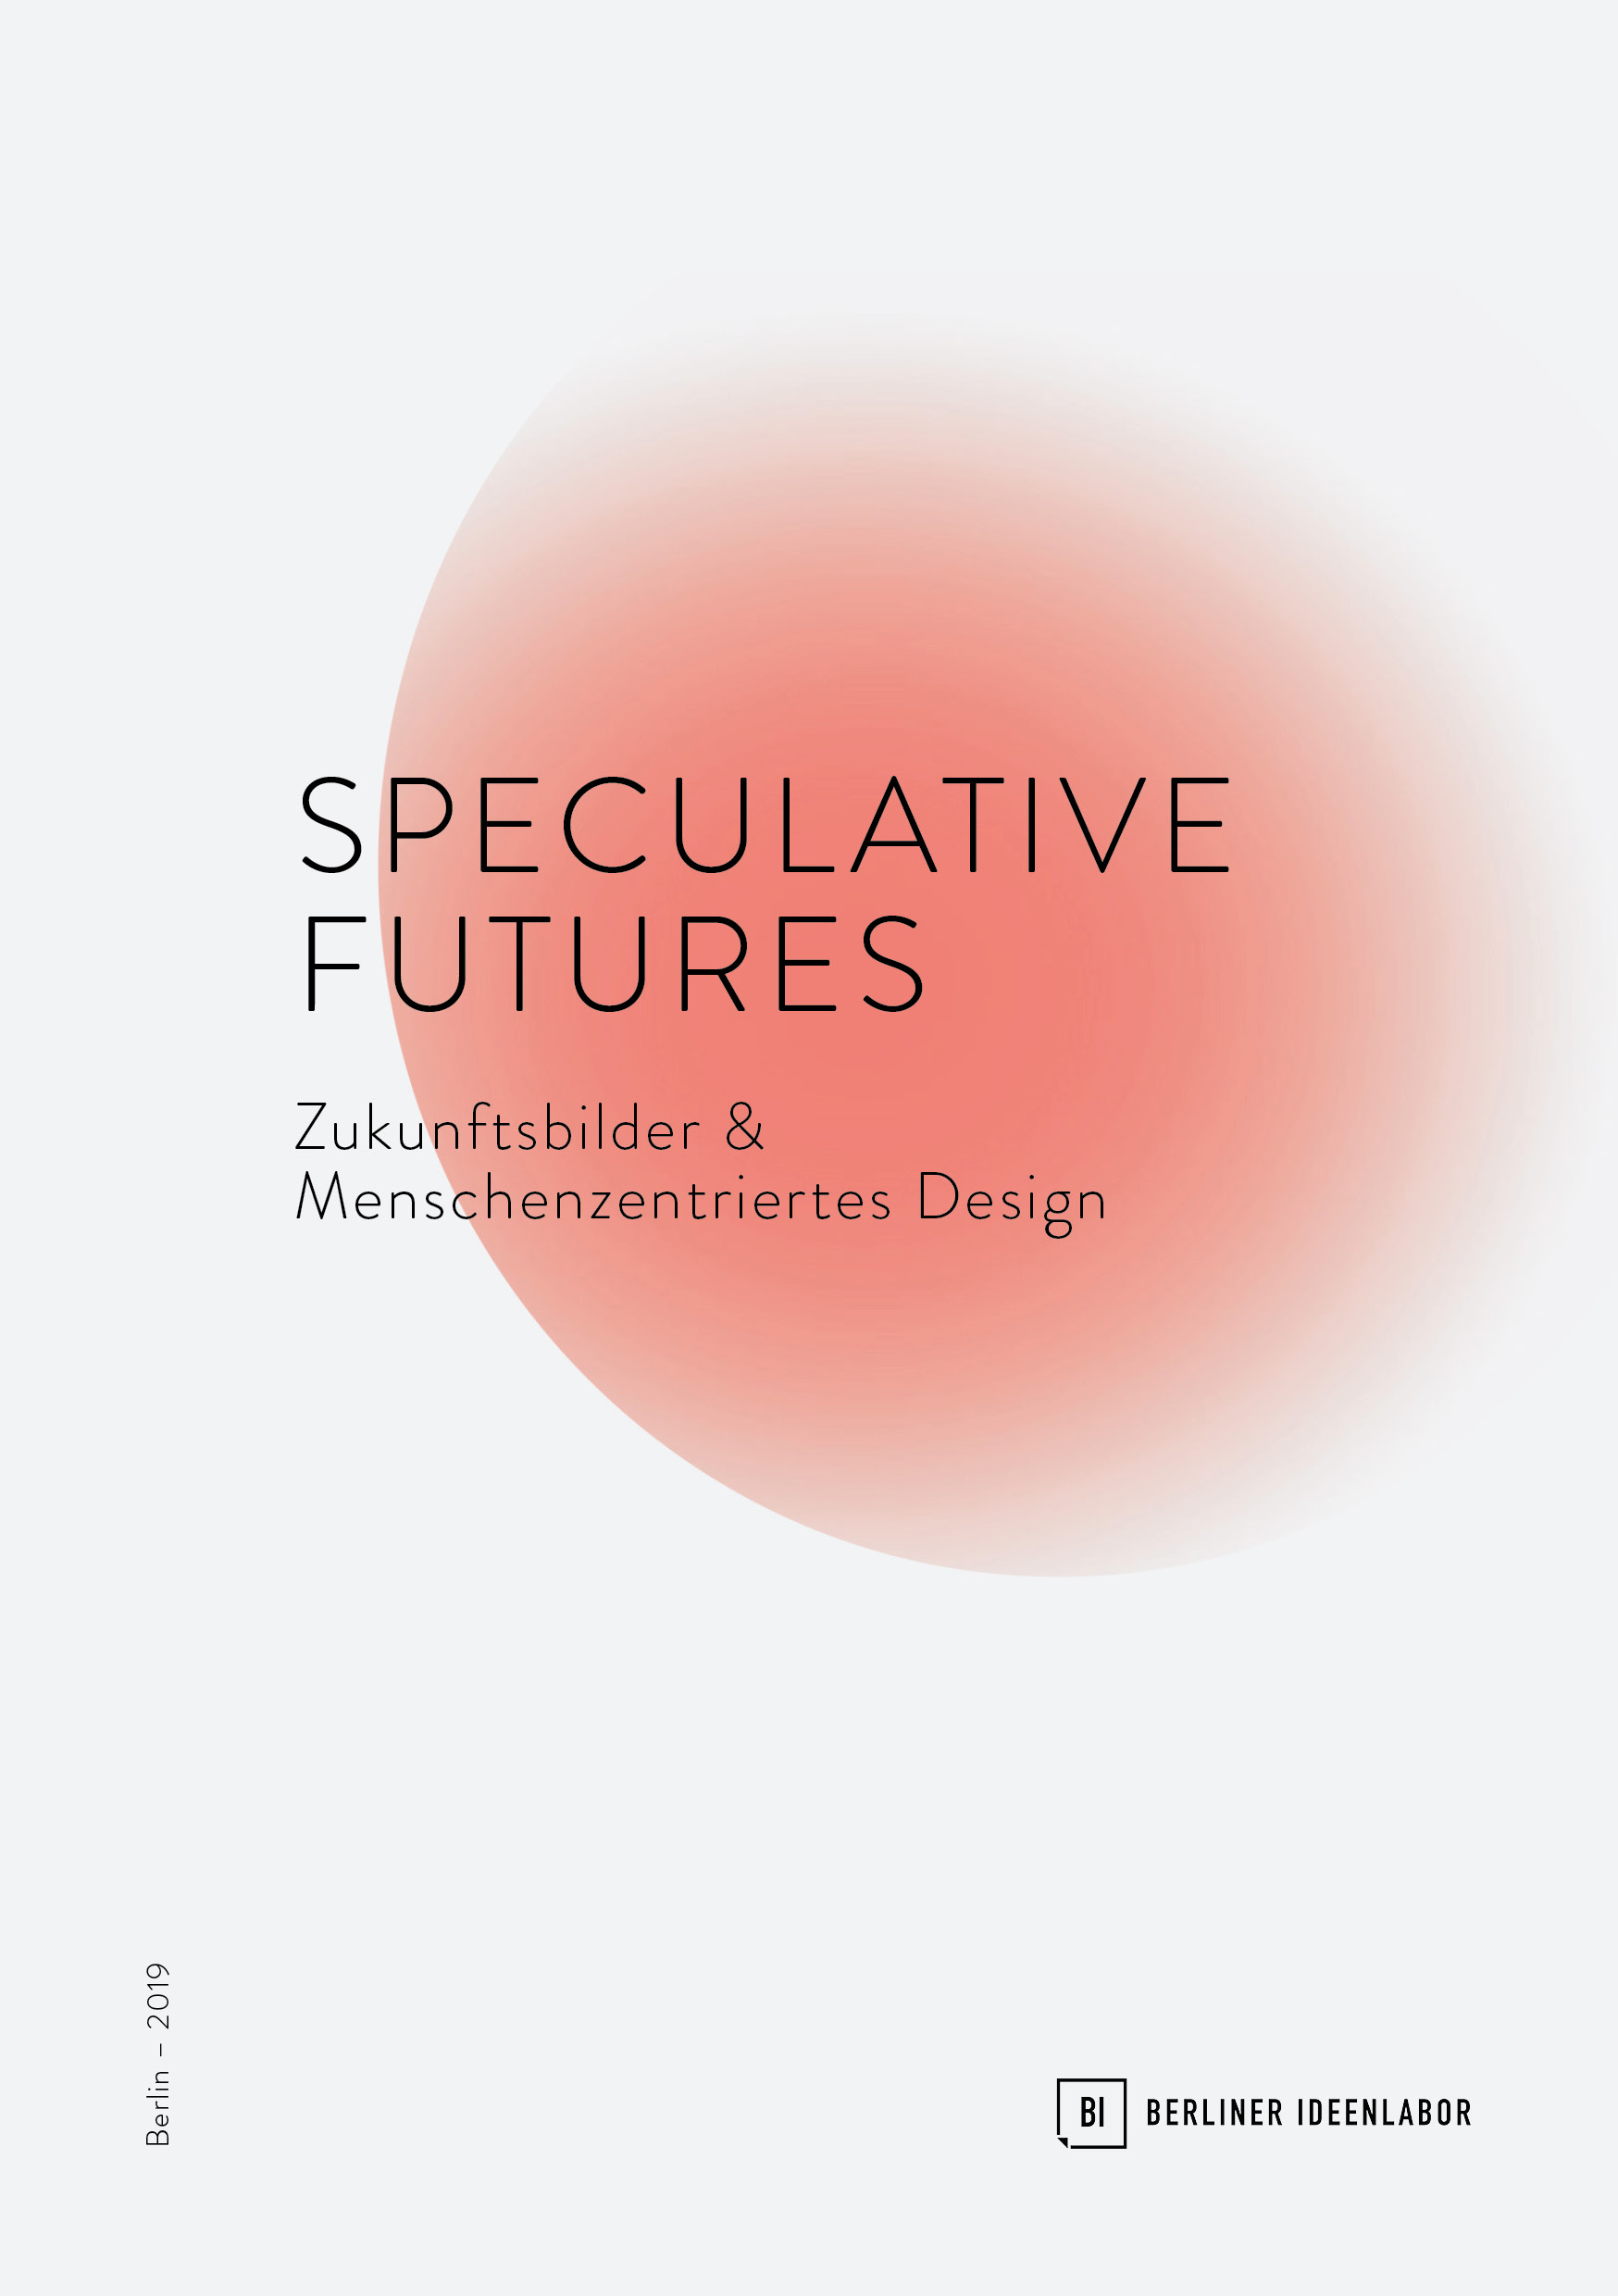 Speculative_Futures_Booklet_BerlinerIdeenlabor_Cover.jpg